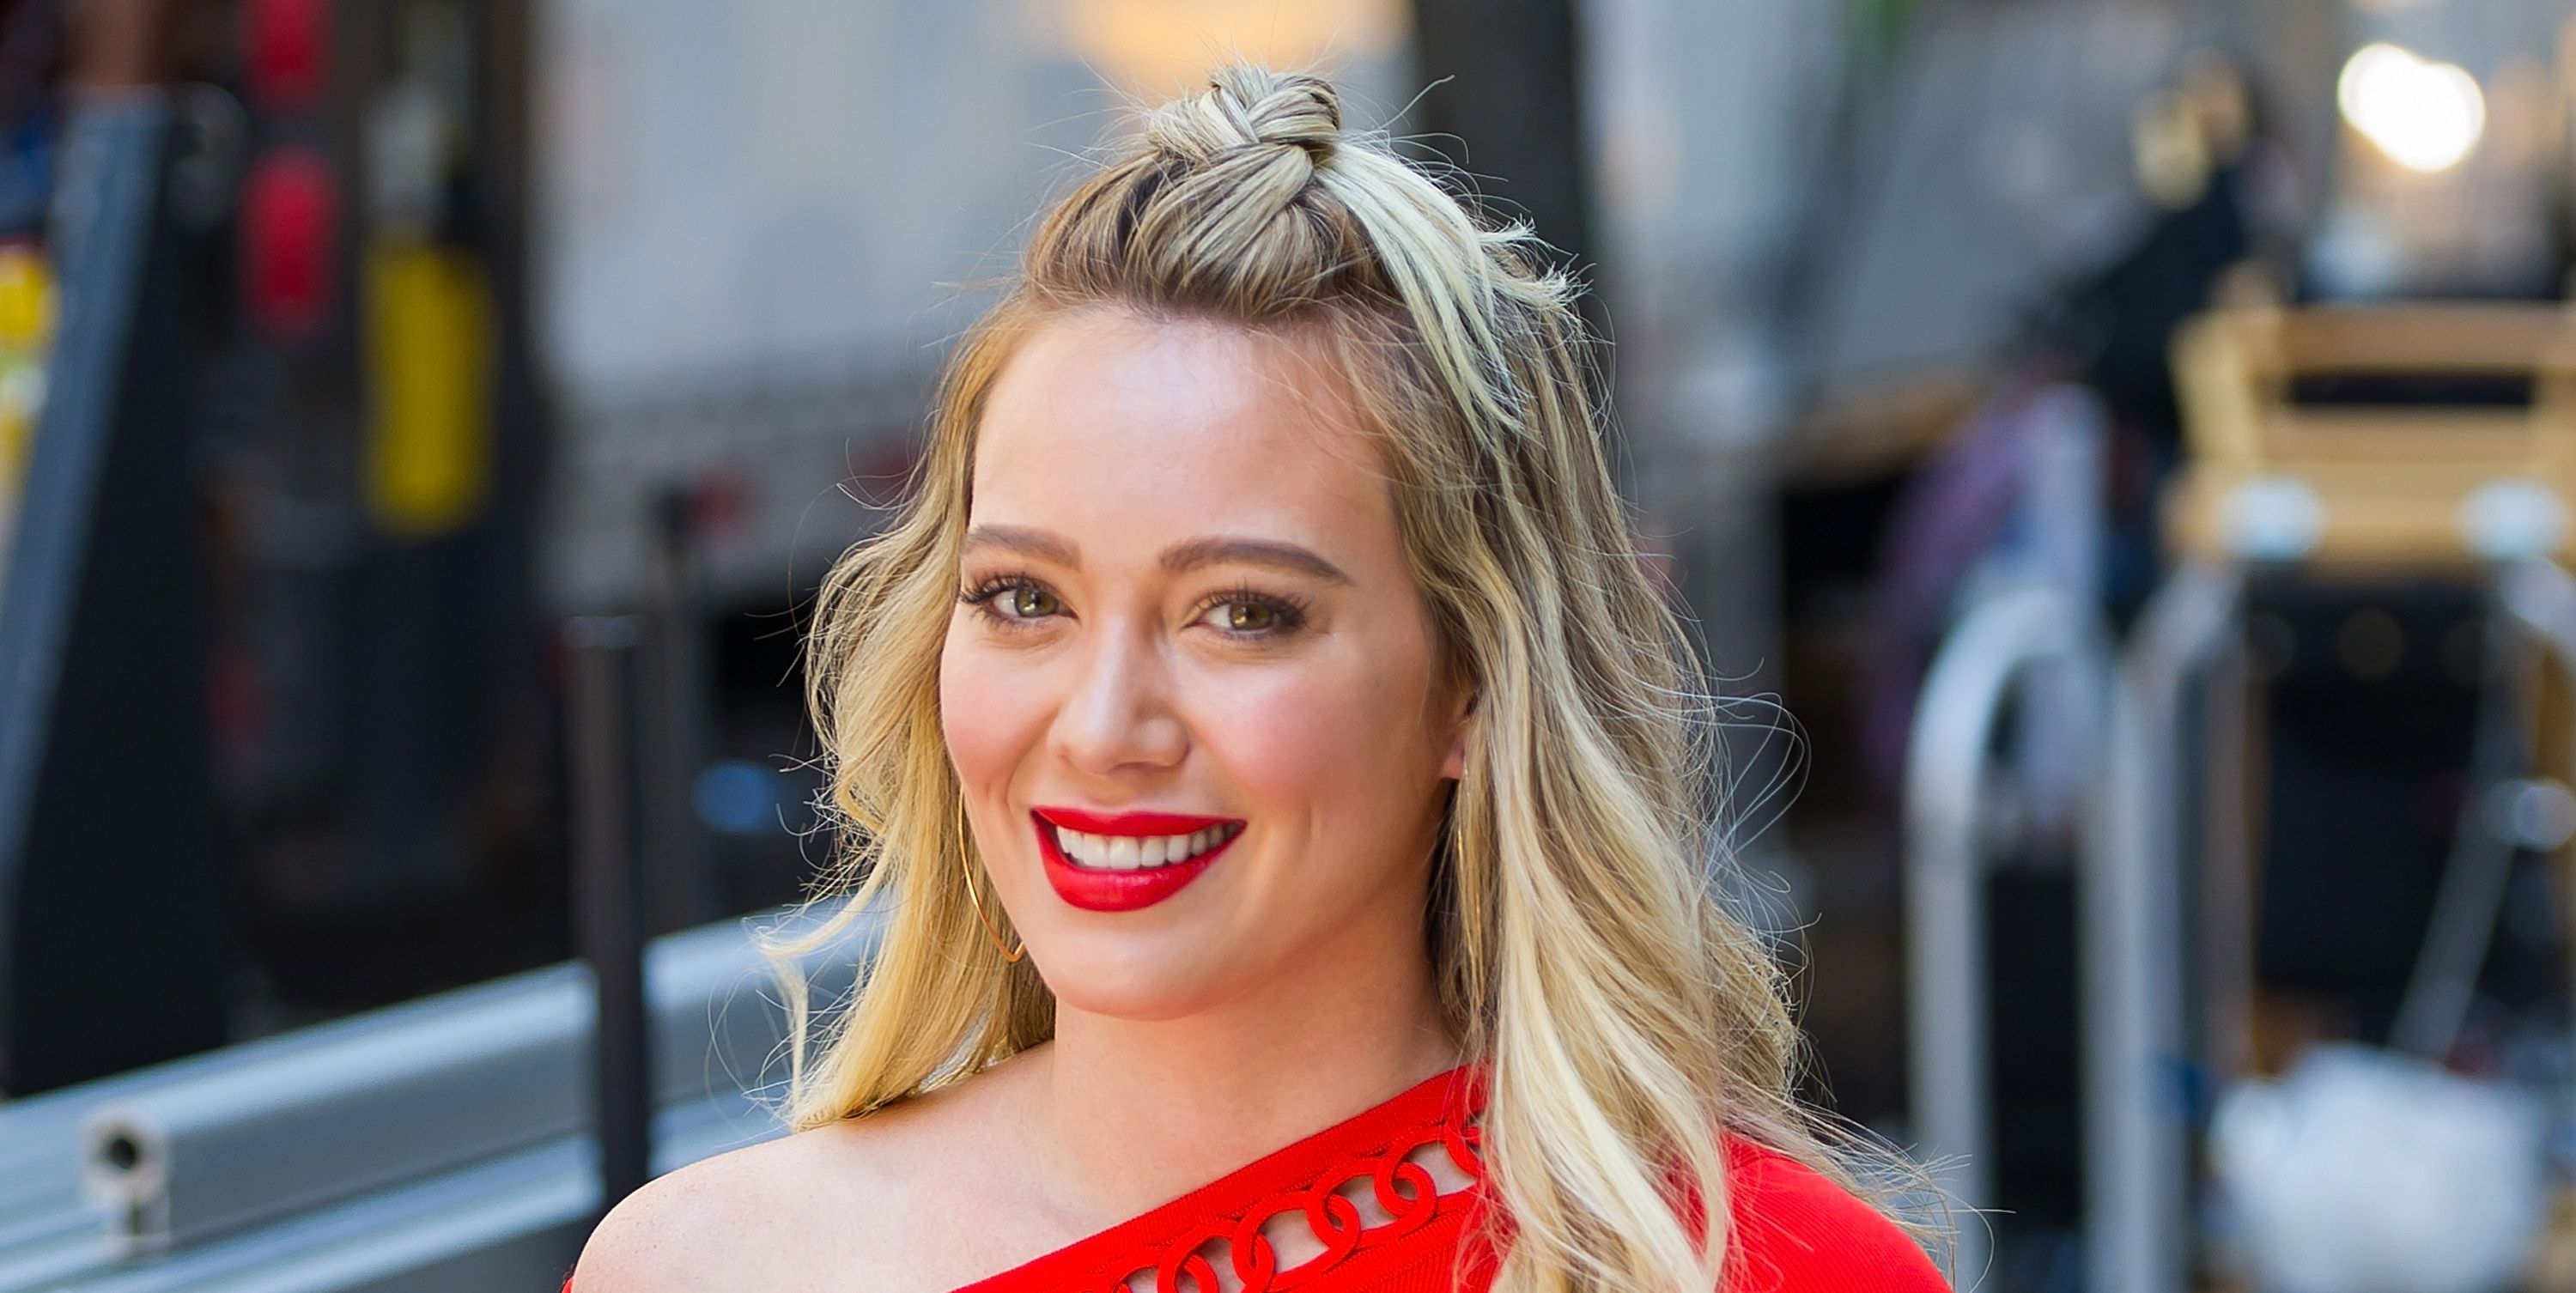 See Hilary Duff's New Short Aqua Blue Hair